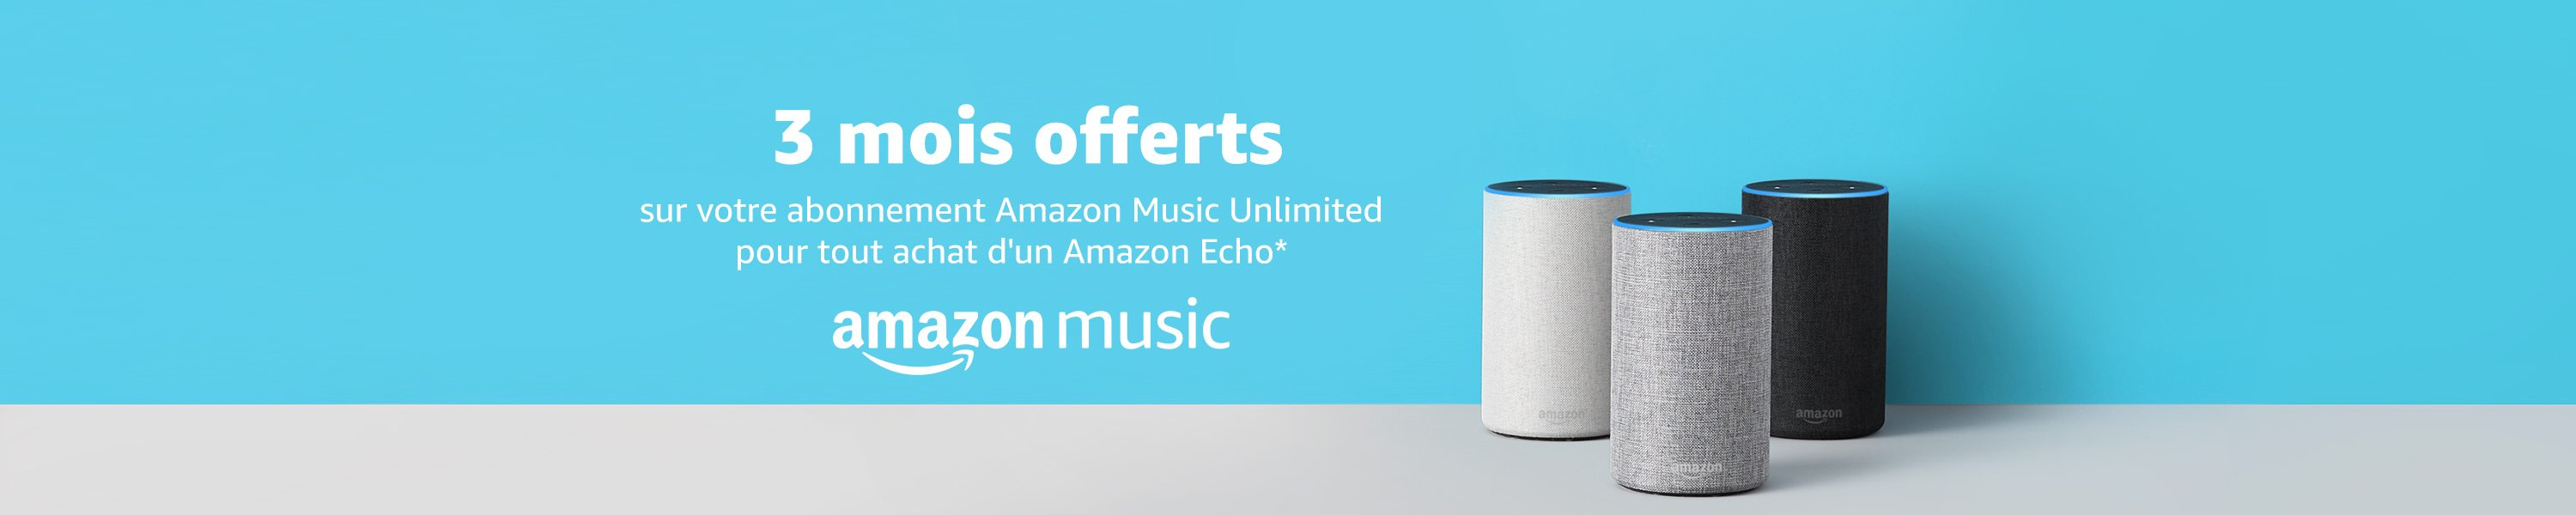 Alexa Amazon Muisc Echo Unlimited 3 mois offerts